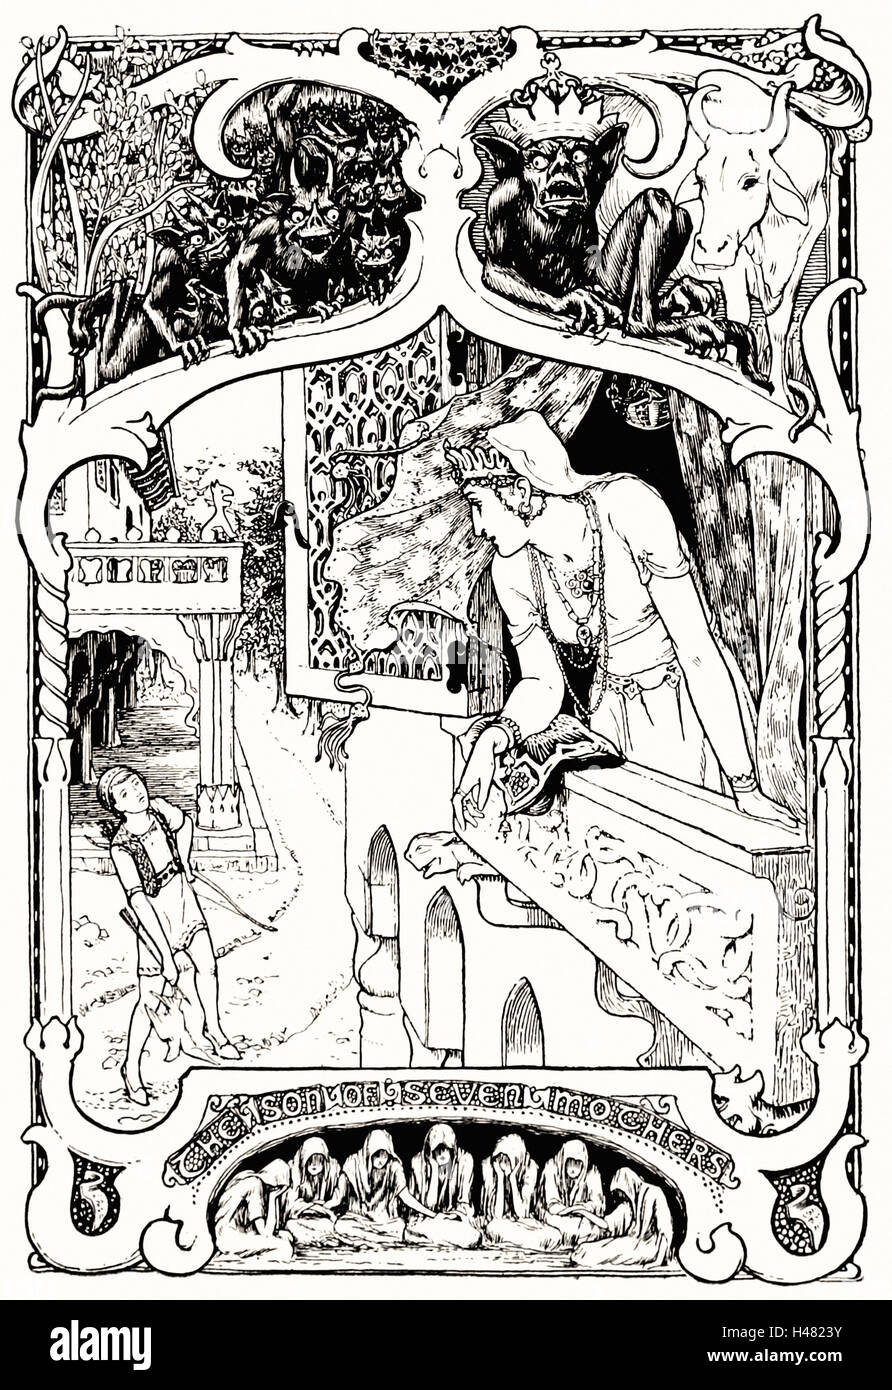 Illustration facing page 120 of Indian Fairy Tales (1892) - Stock Image